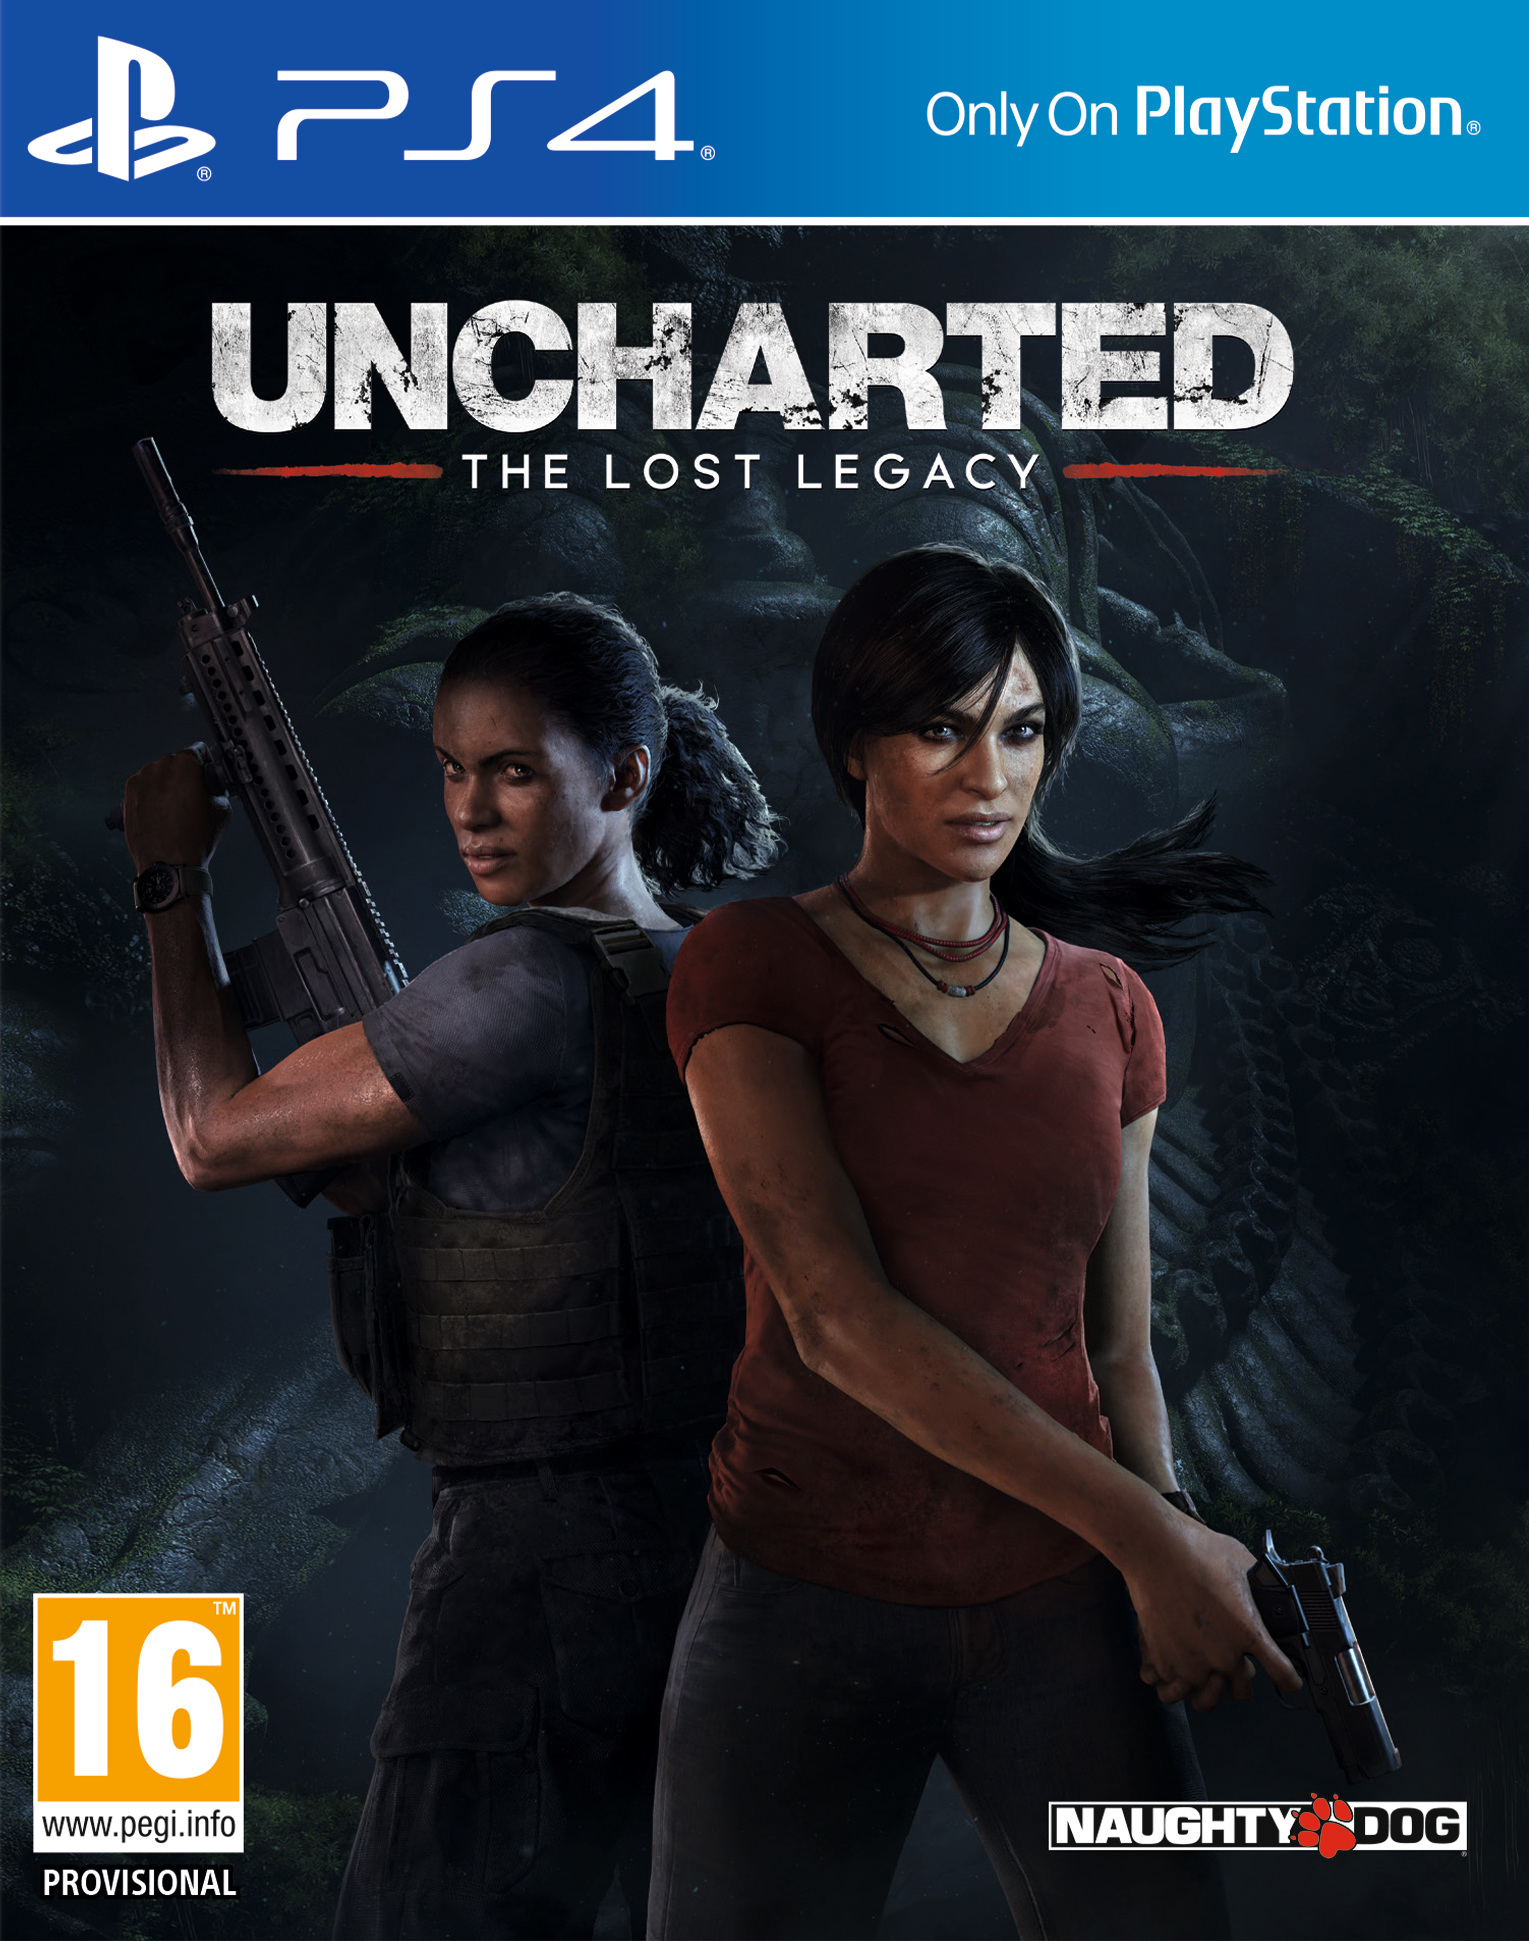 Бокс-арт (PS4) - Uncharted: The Lost Legacy